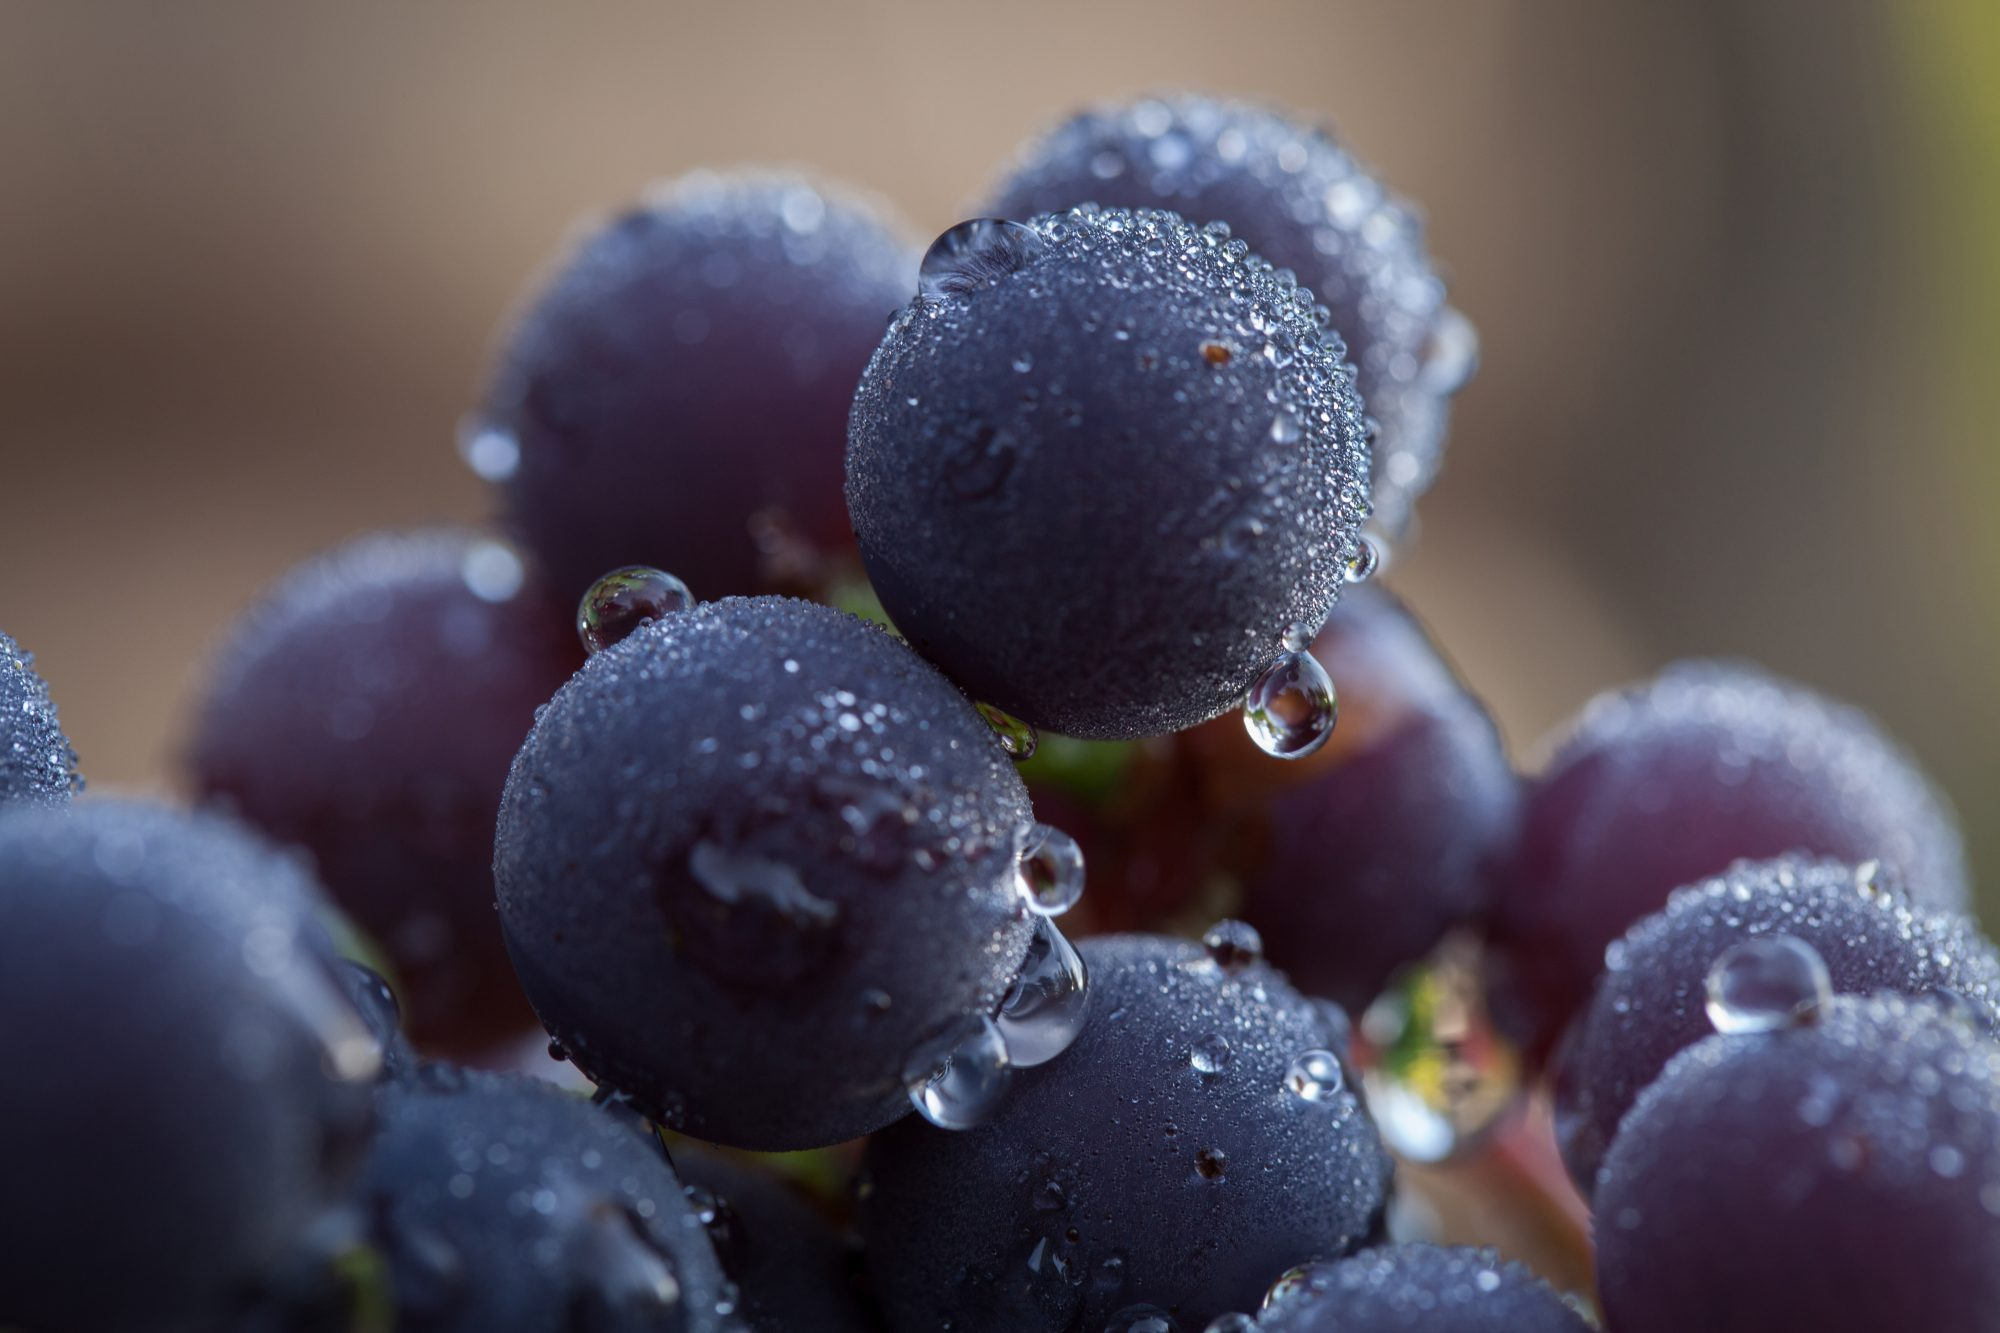 Thawing grapes Getty 8/25/20